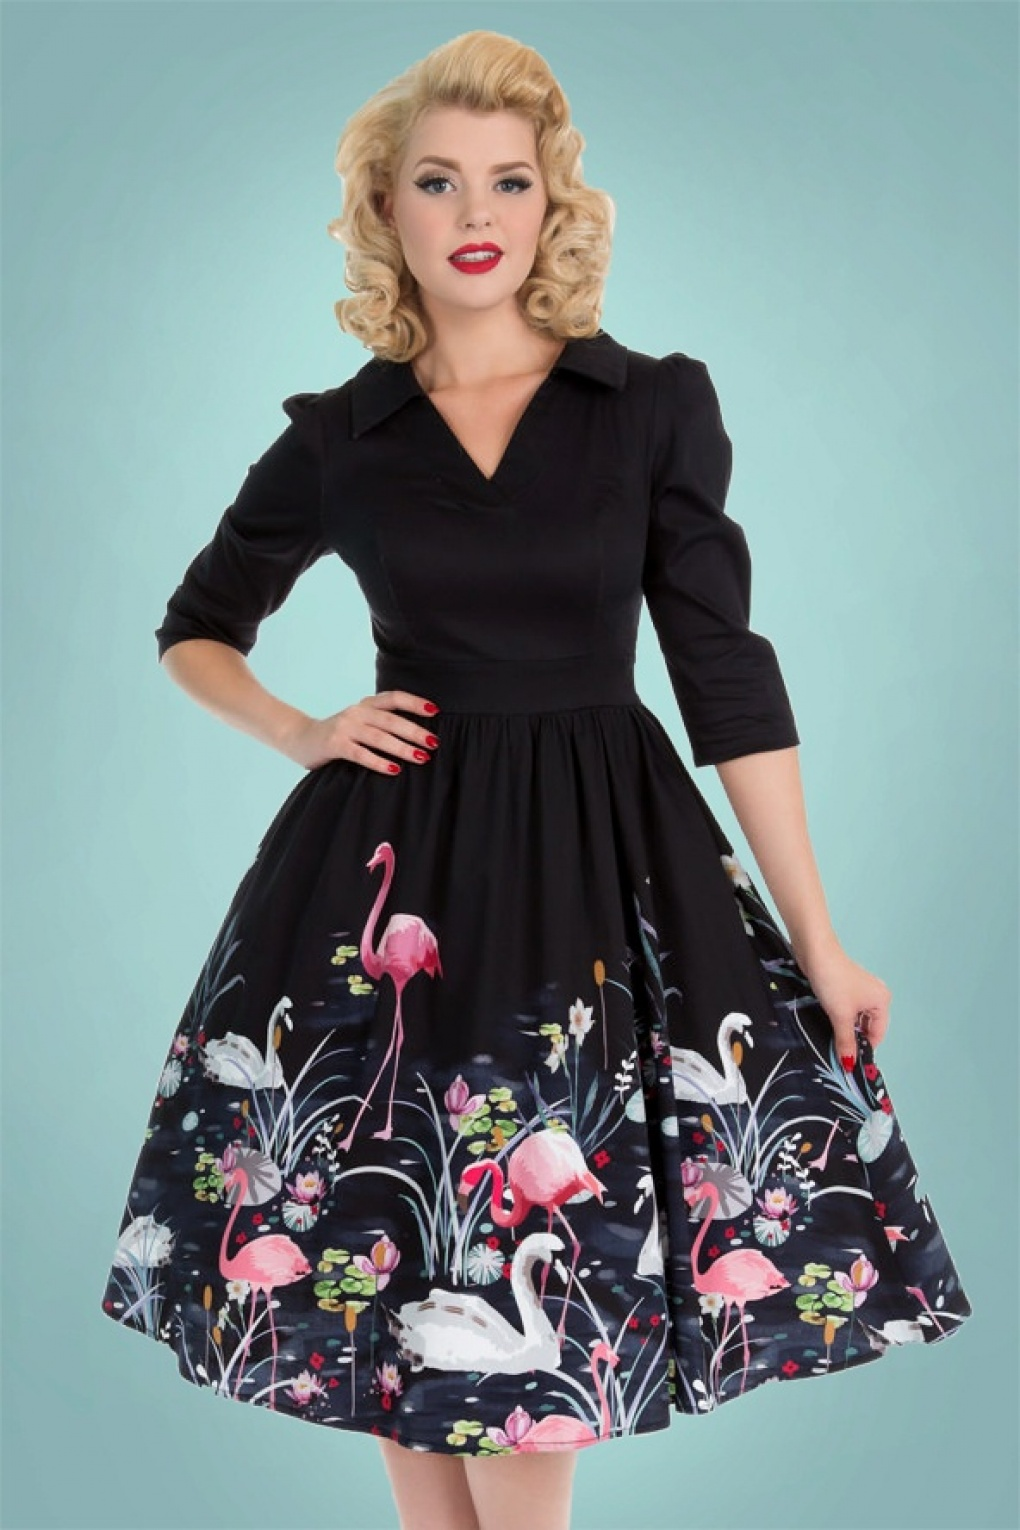 Vintage Style Christmas Dresses, Sweaters, Clothing